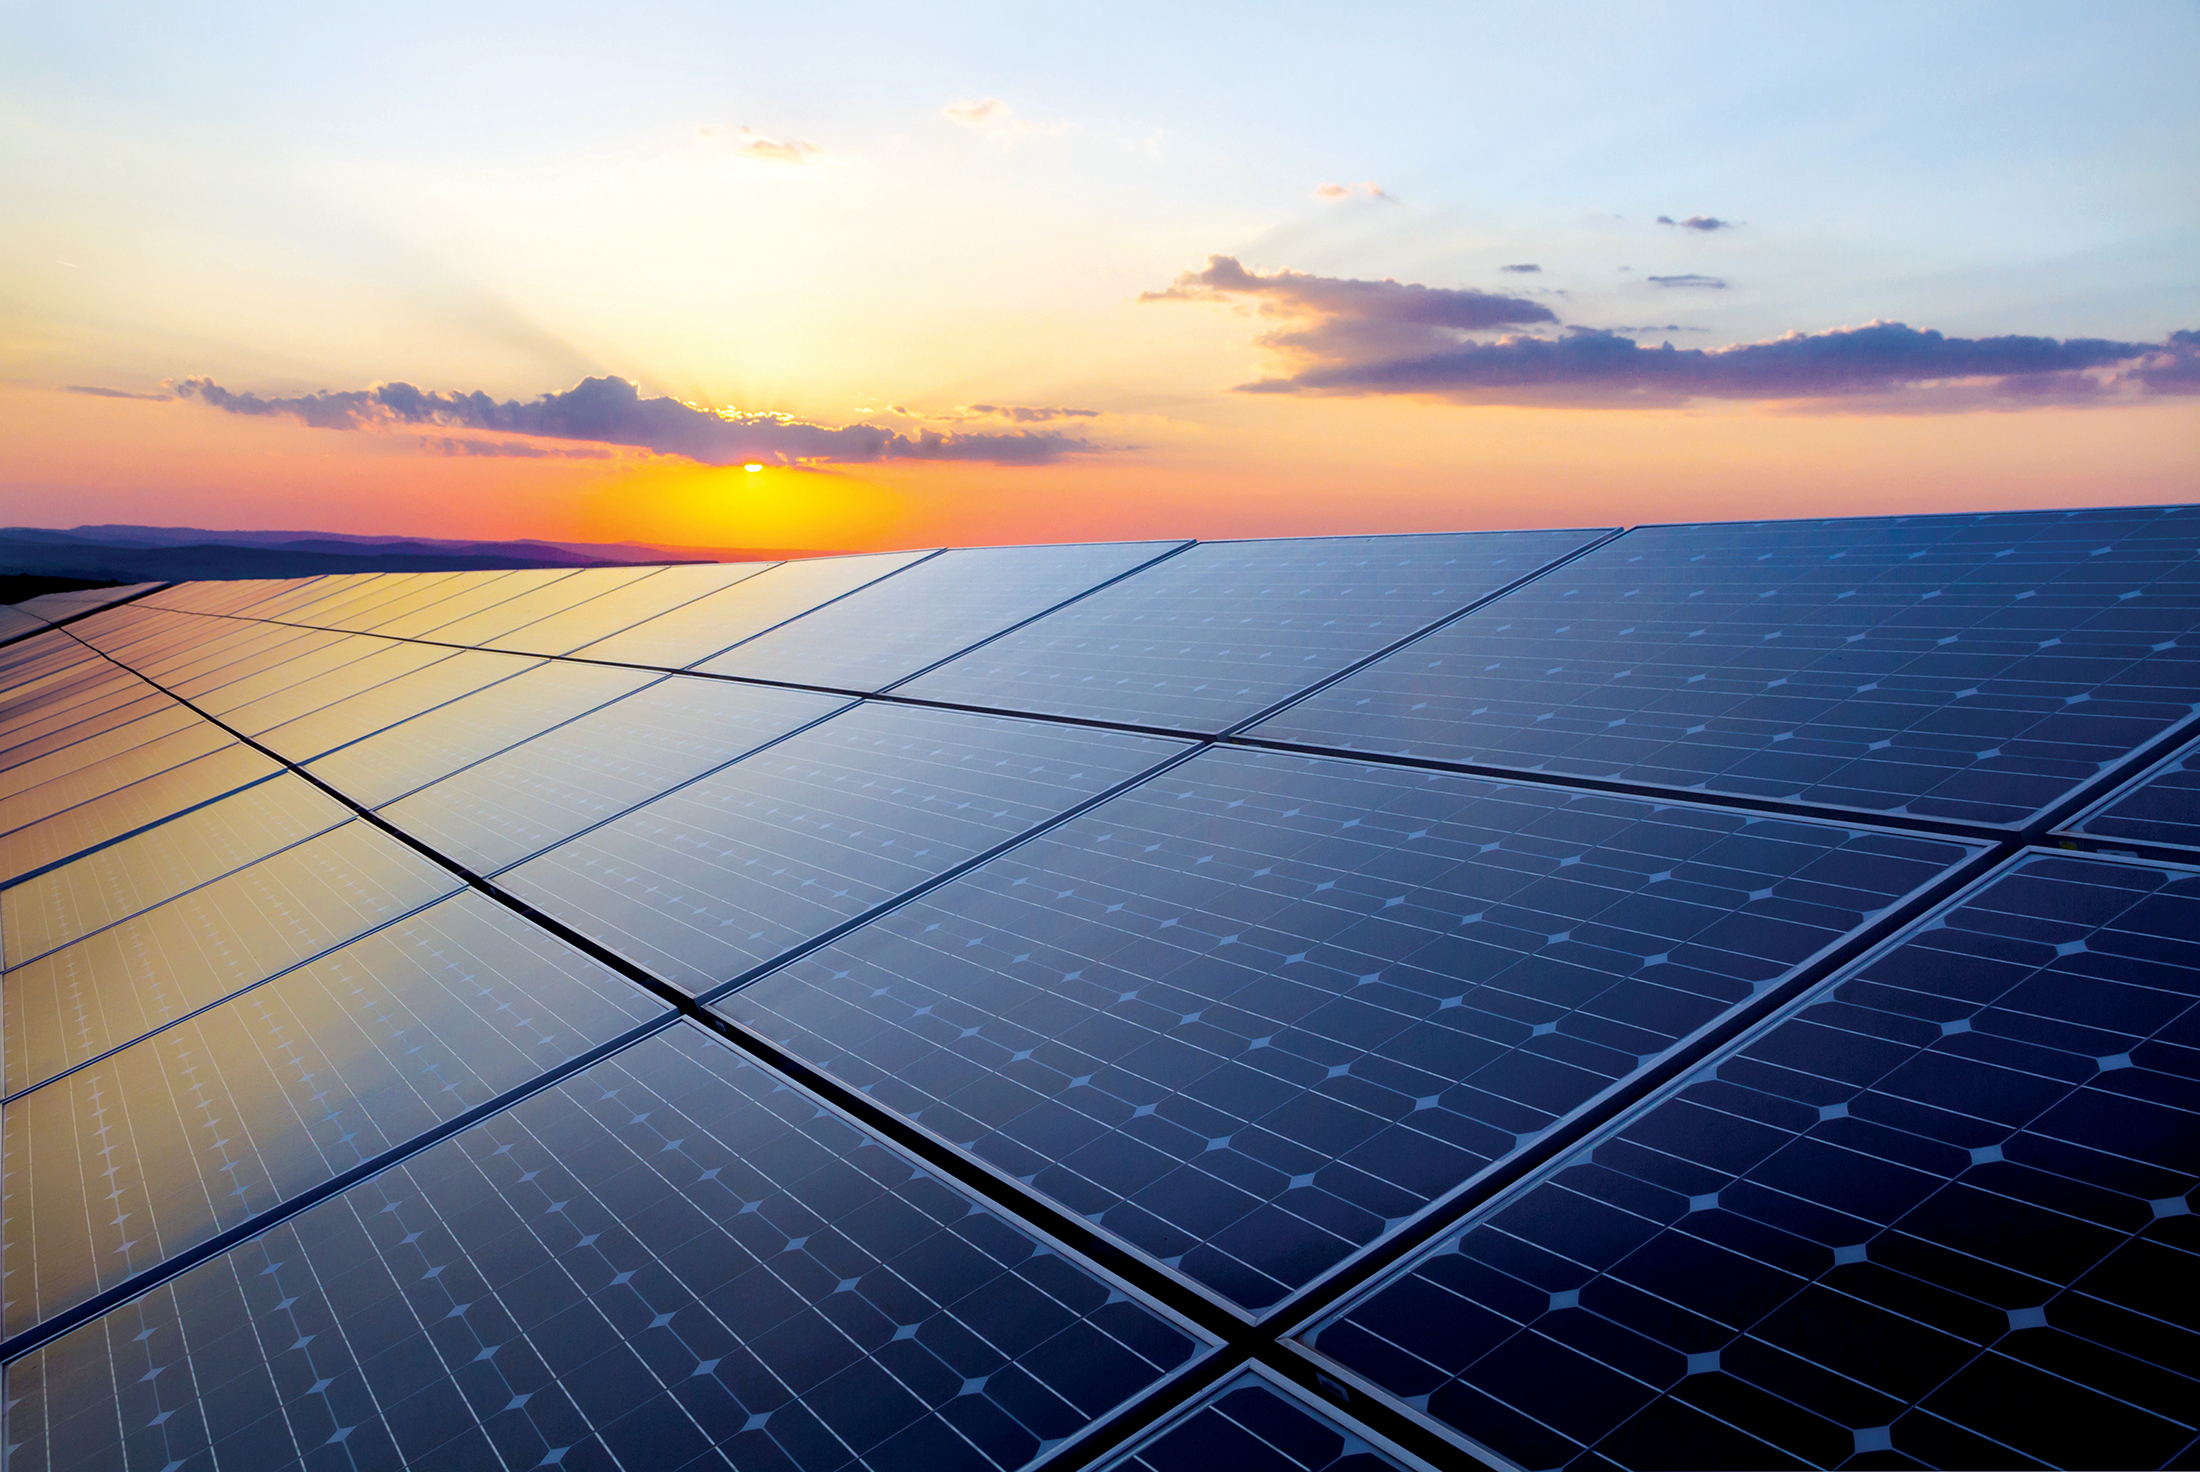 Solar power cells in foreground with sunset in the background